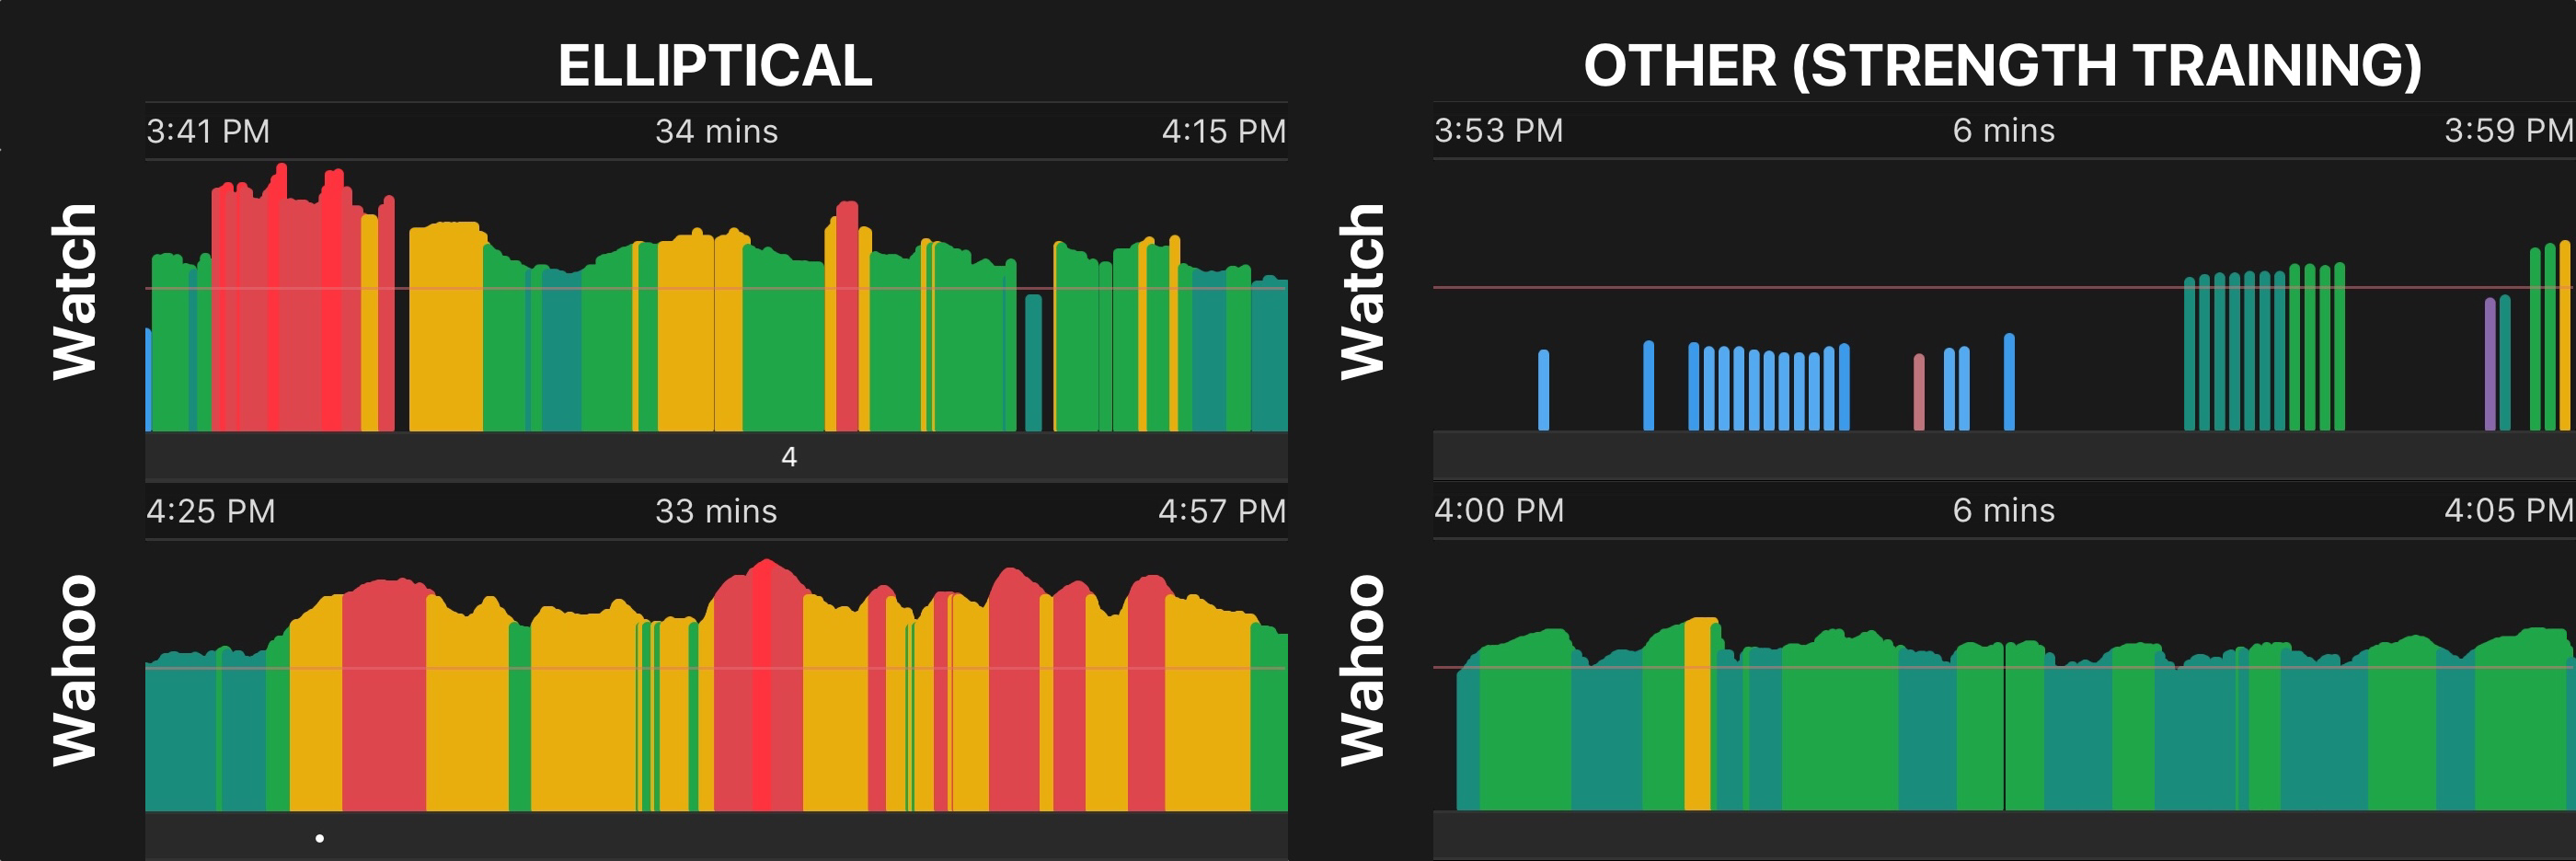 Same workout, different HR monitor.